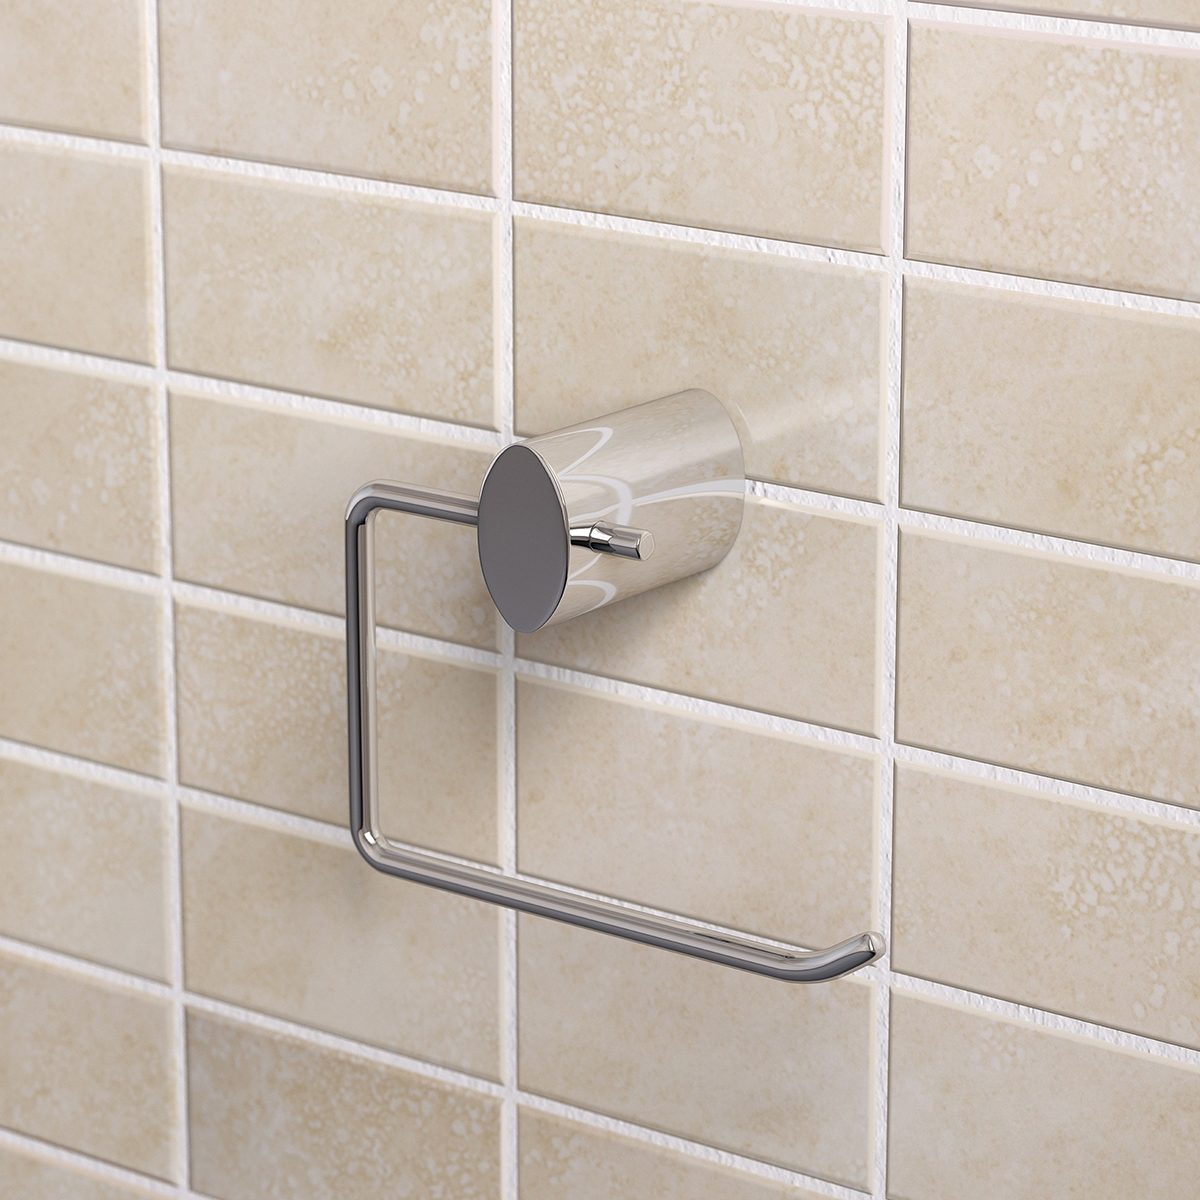 Bristan Oval Brass Toilet Roll Holder, Chrome Plated